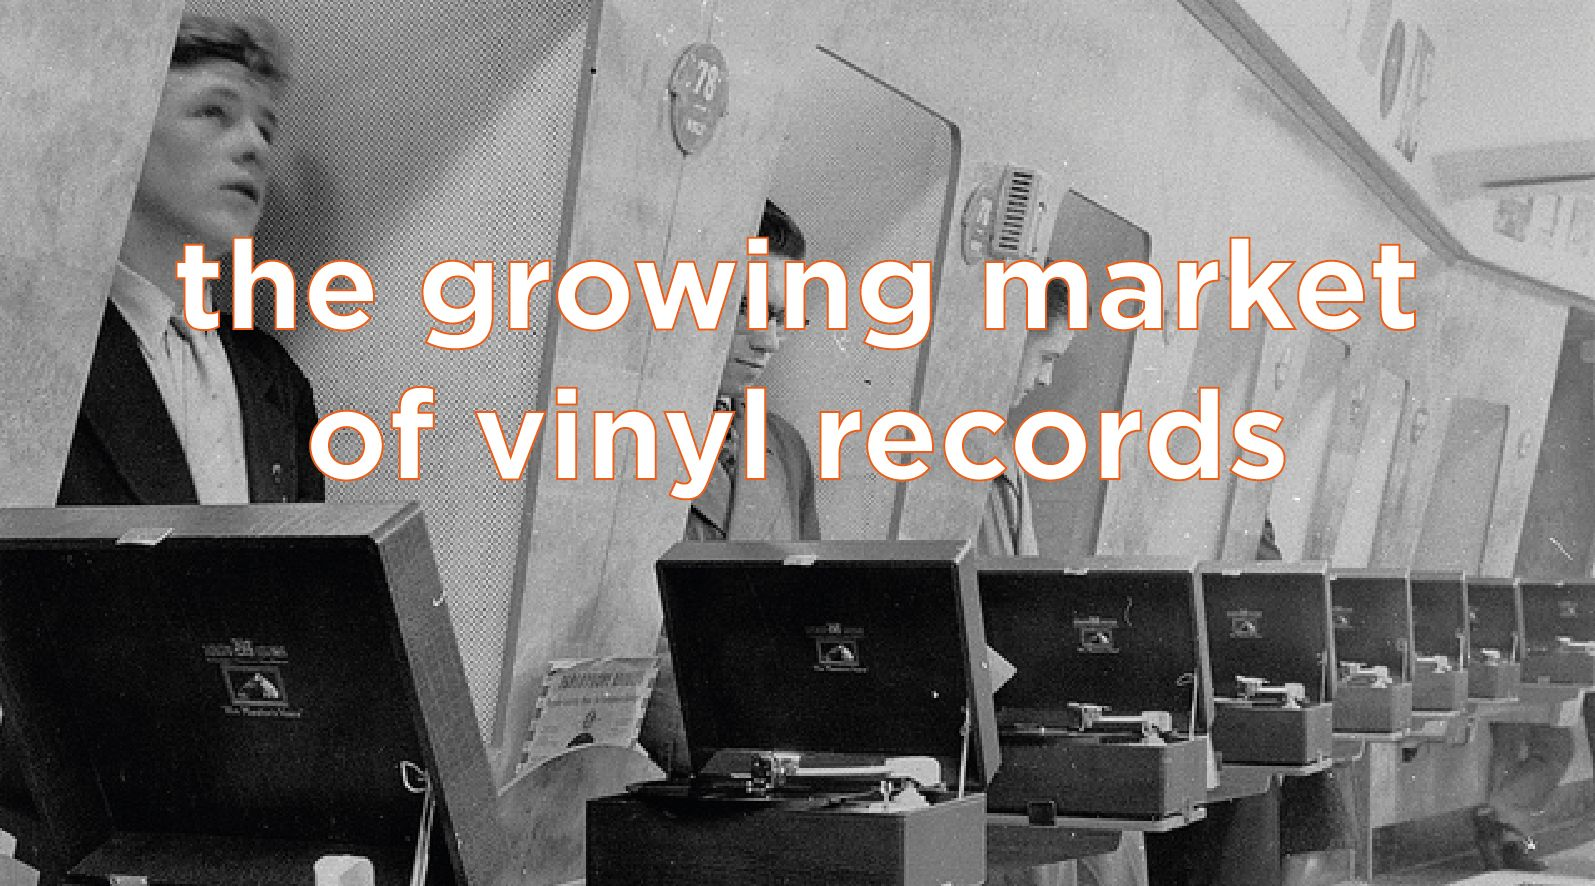 The growing market of vinyl records